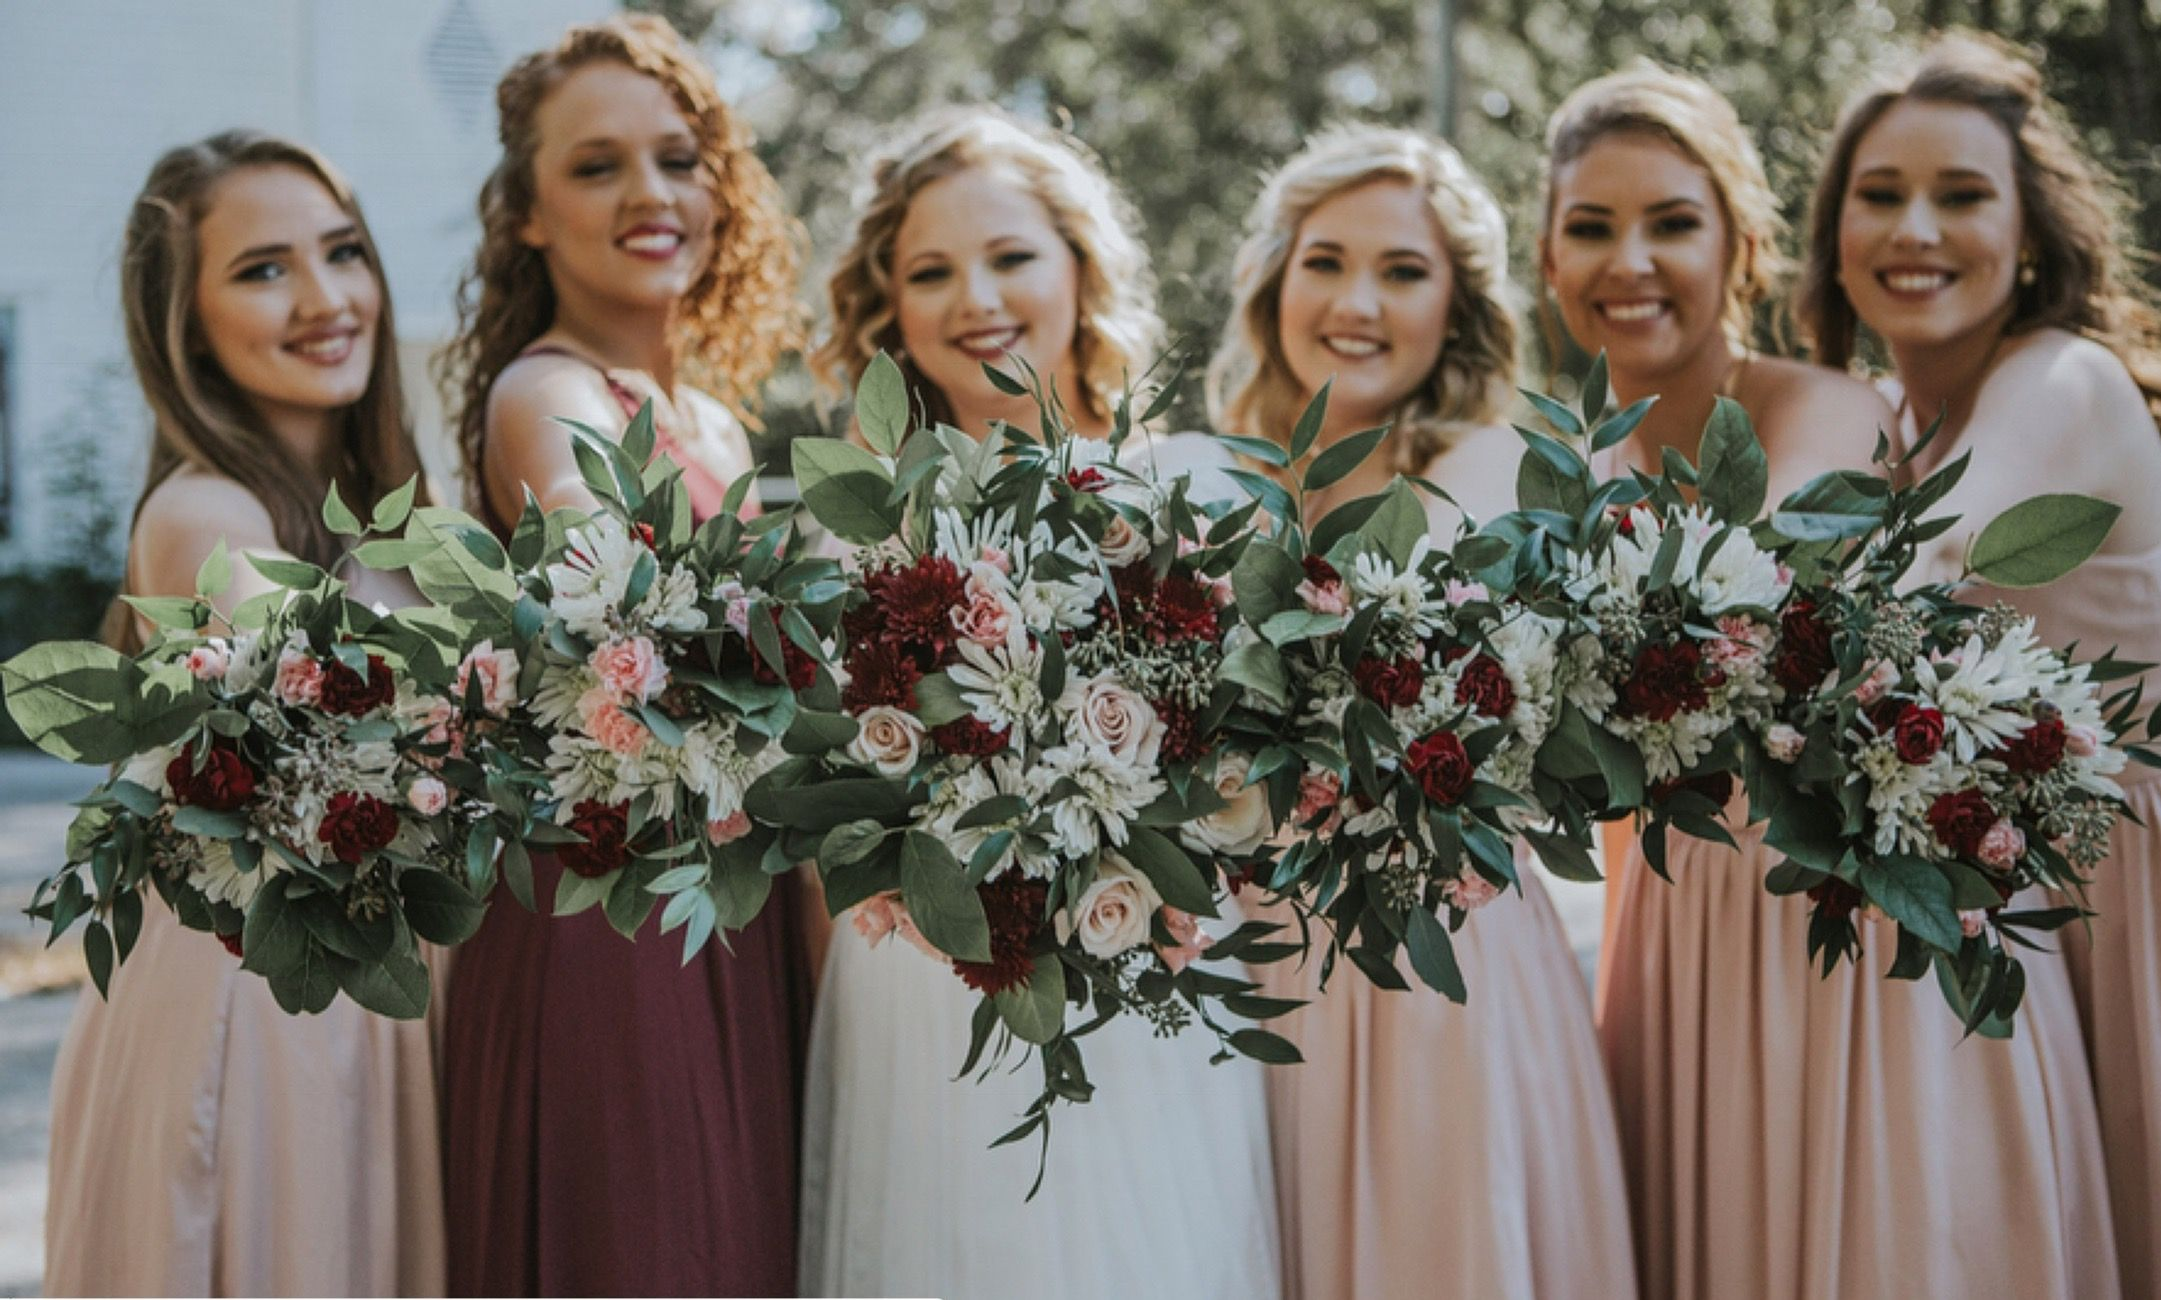 Bride And Bridesmaids Bouquets That Will Make Your Heart Happy